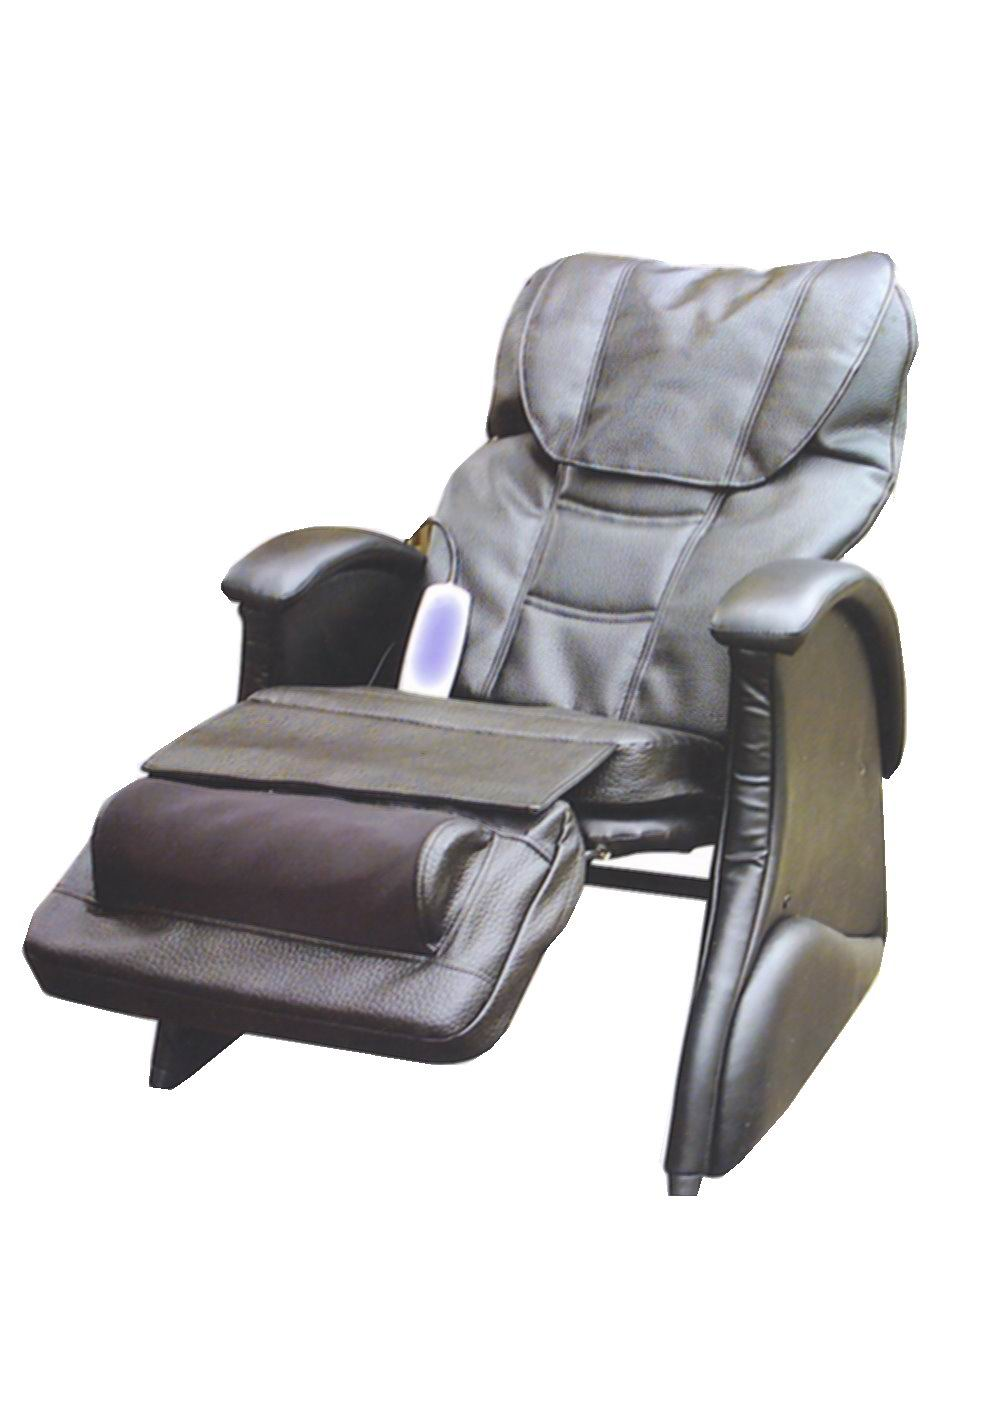 Maestro chairs with vibrator